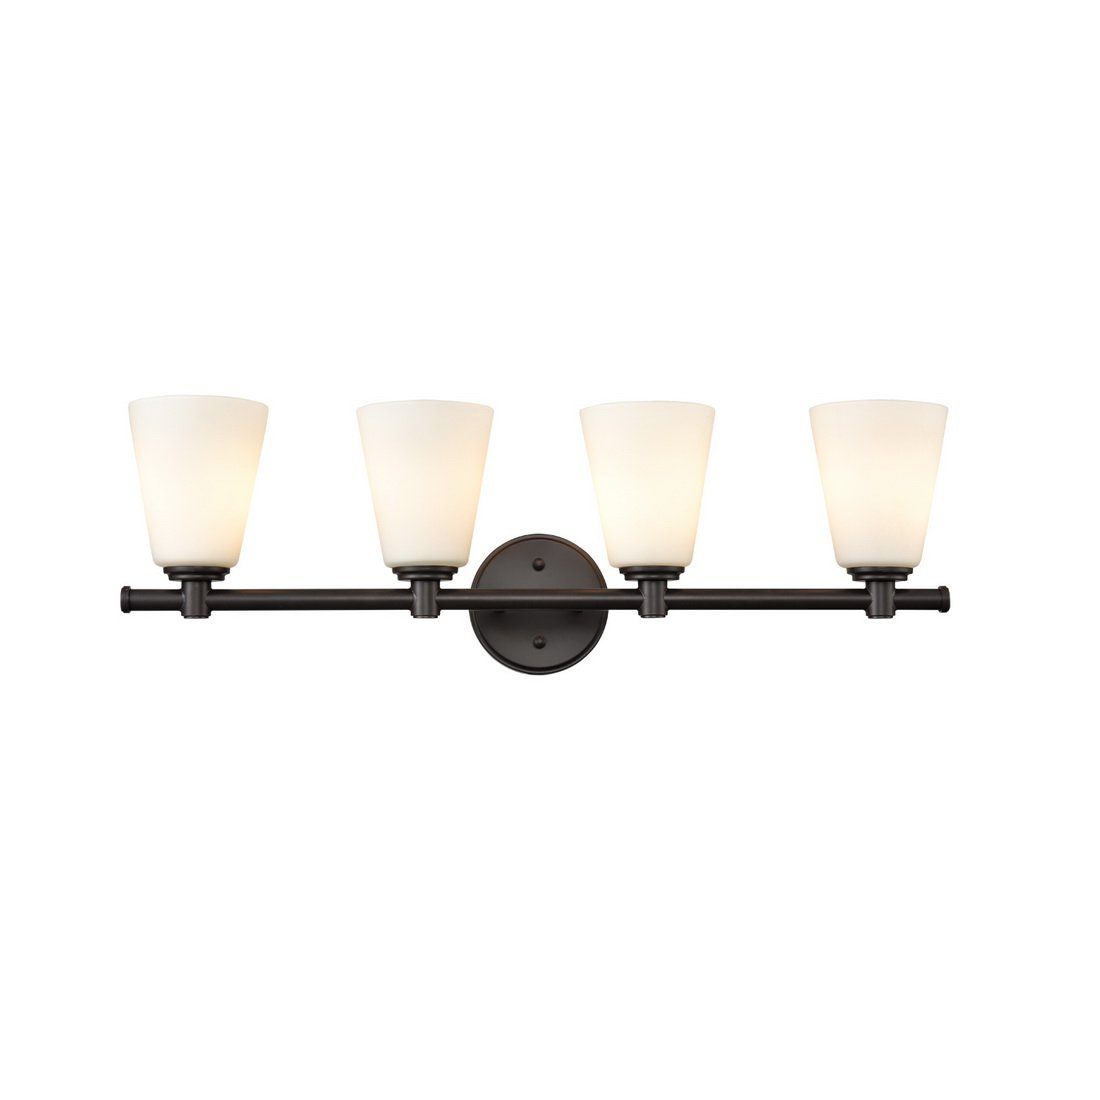 AXILAND Vanity Lighting 4 Light Oil Rubbed Bronze Wall Sconce with Opal Glass Shade